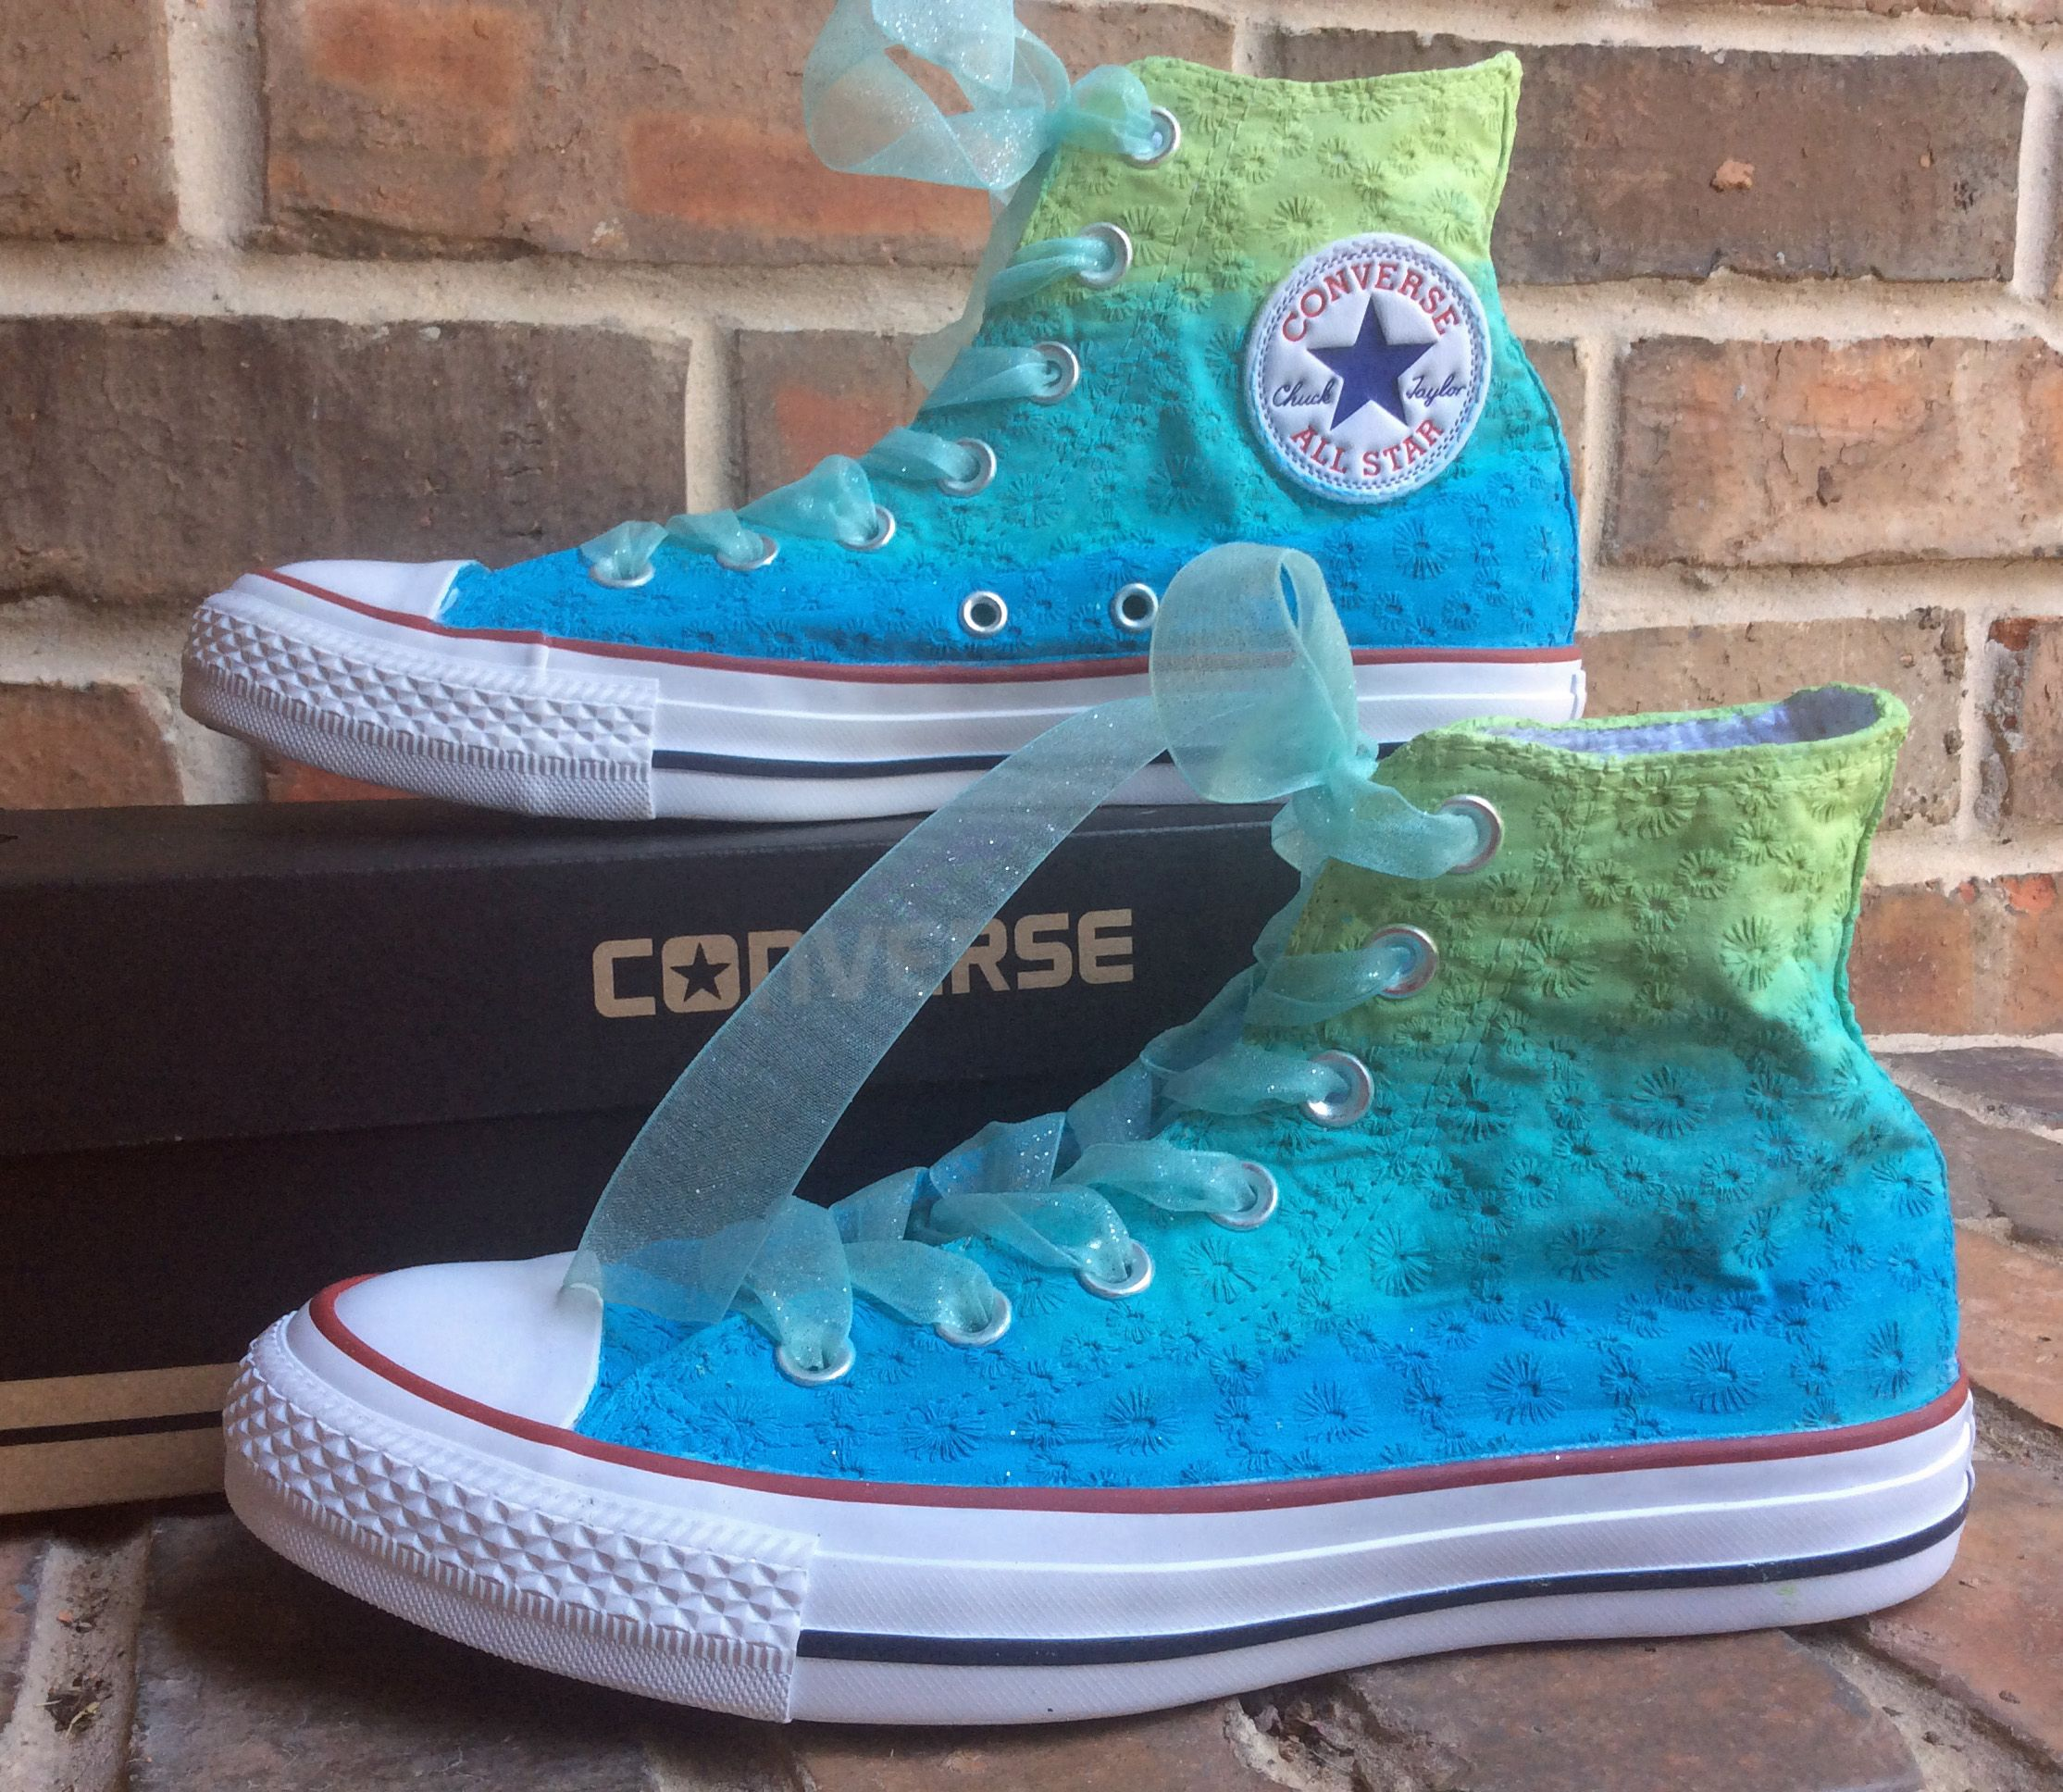 aqua to green ombre converse | Converse, Painted shoes